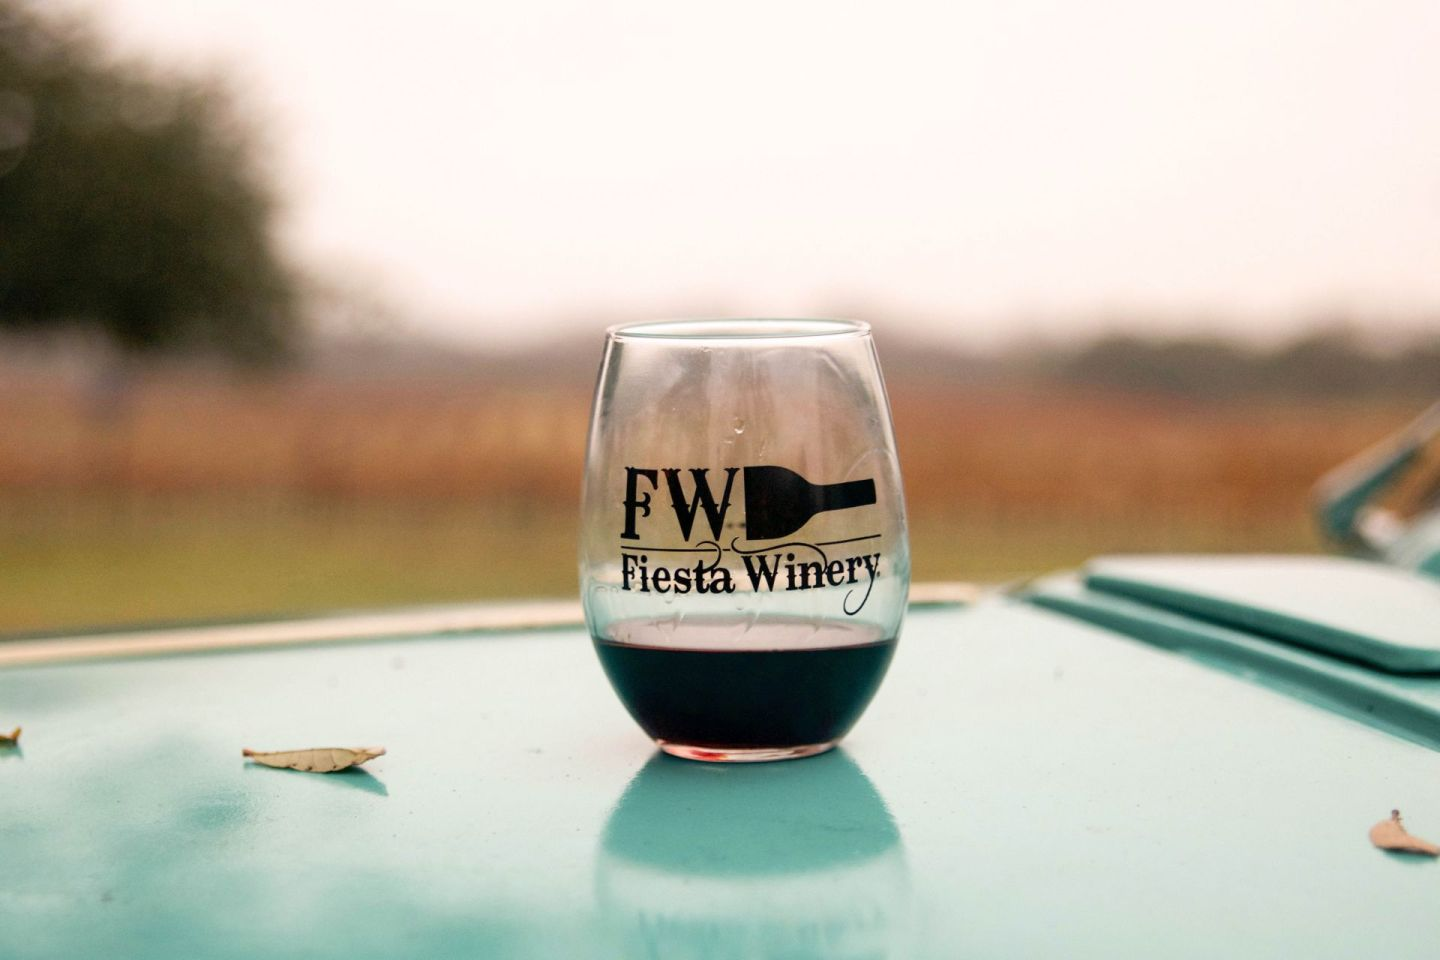 texas wineries - hill country vineyards - fiesta winery texas